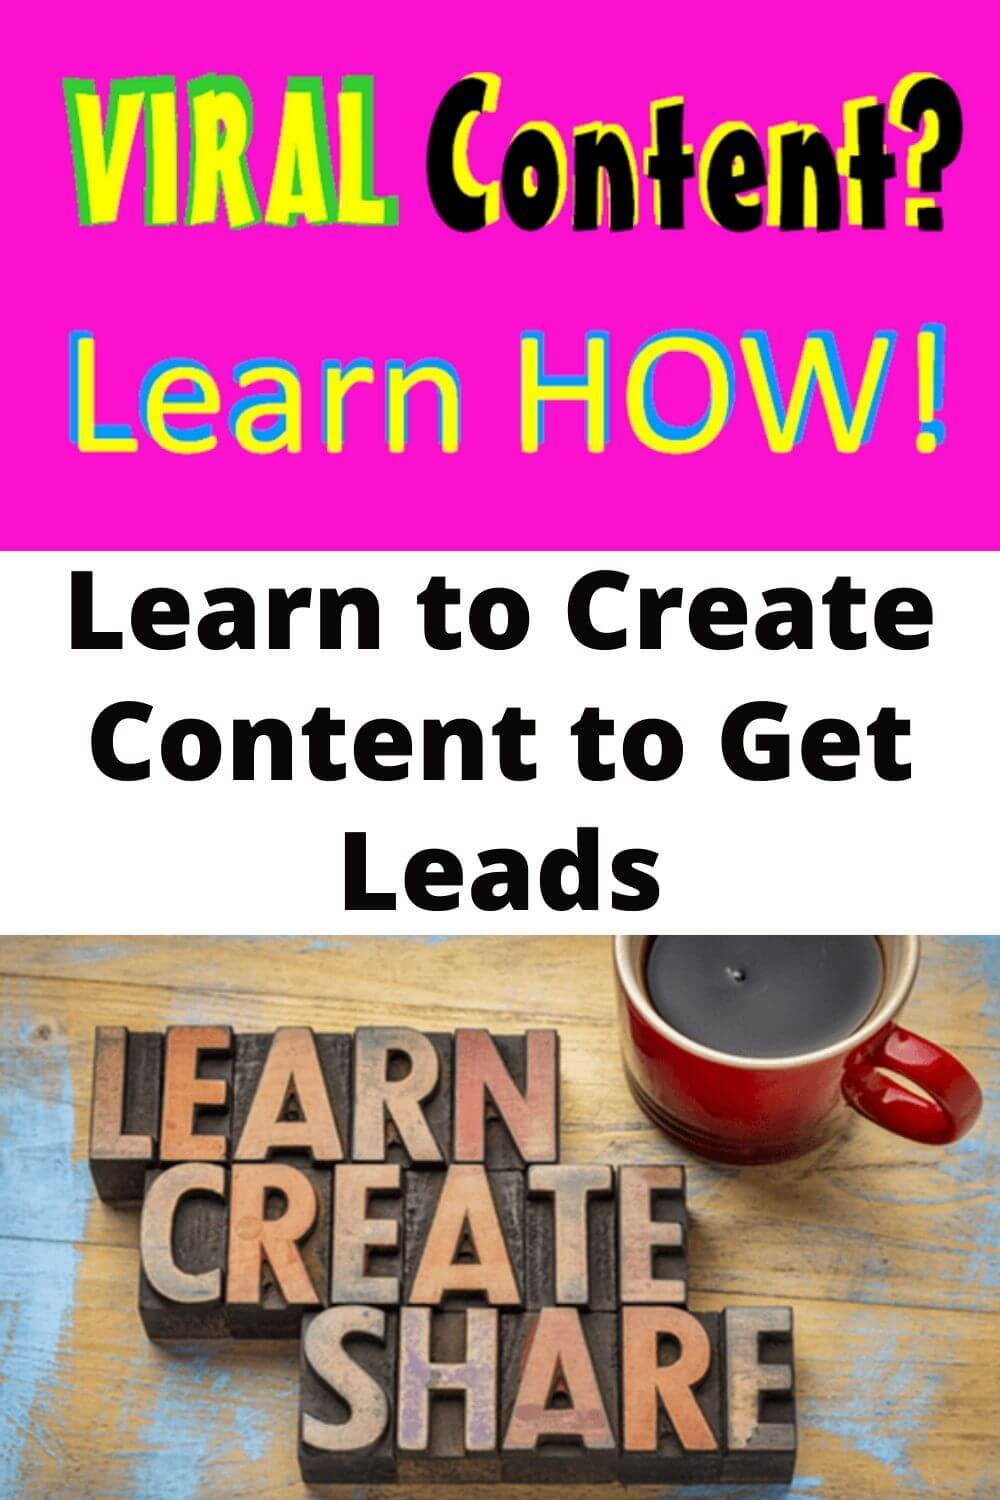 Learn to create content to get leads